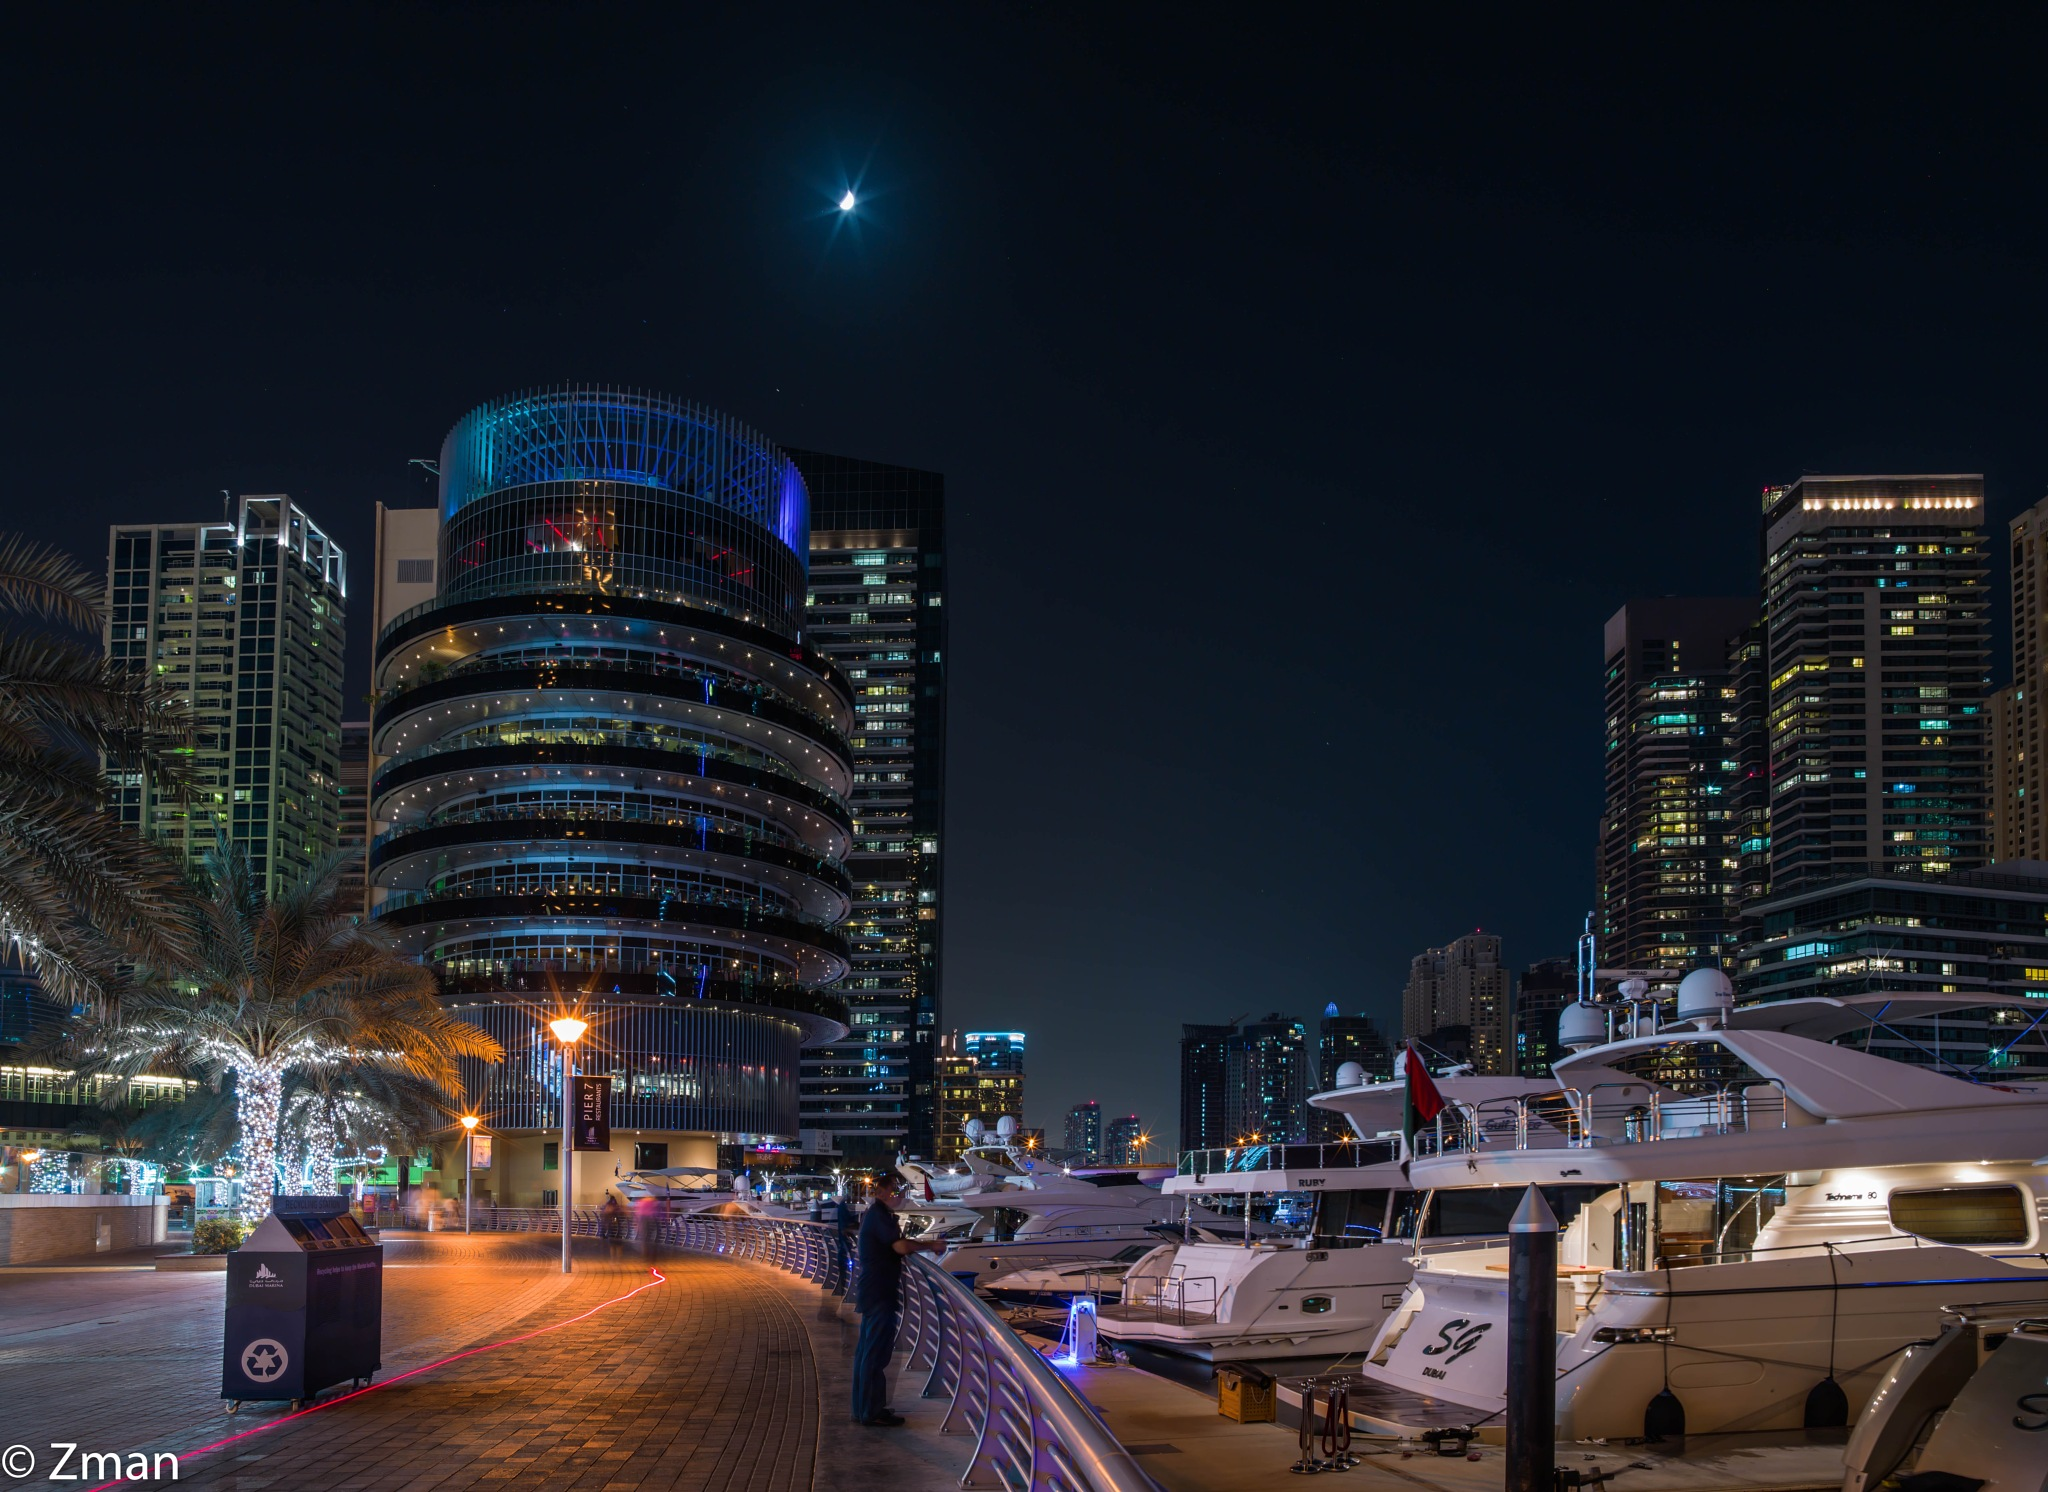 Pier No. 7 and the Yachts by muhammad.nasser.963